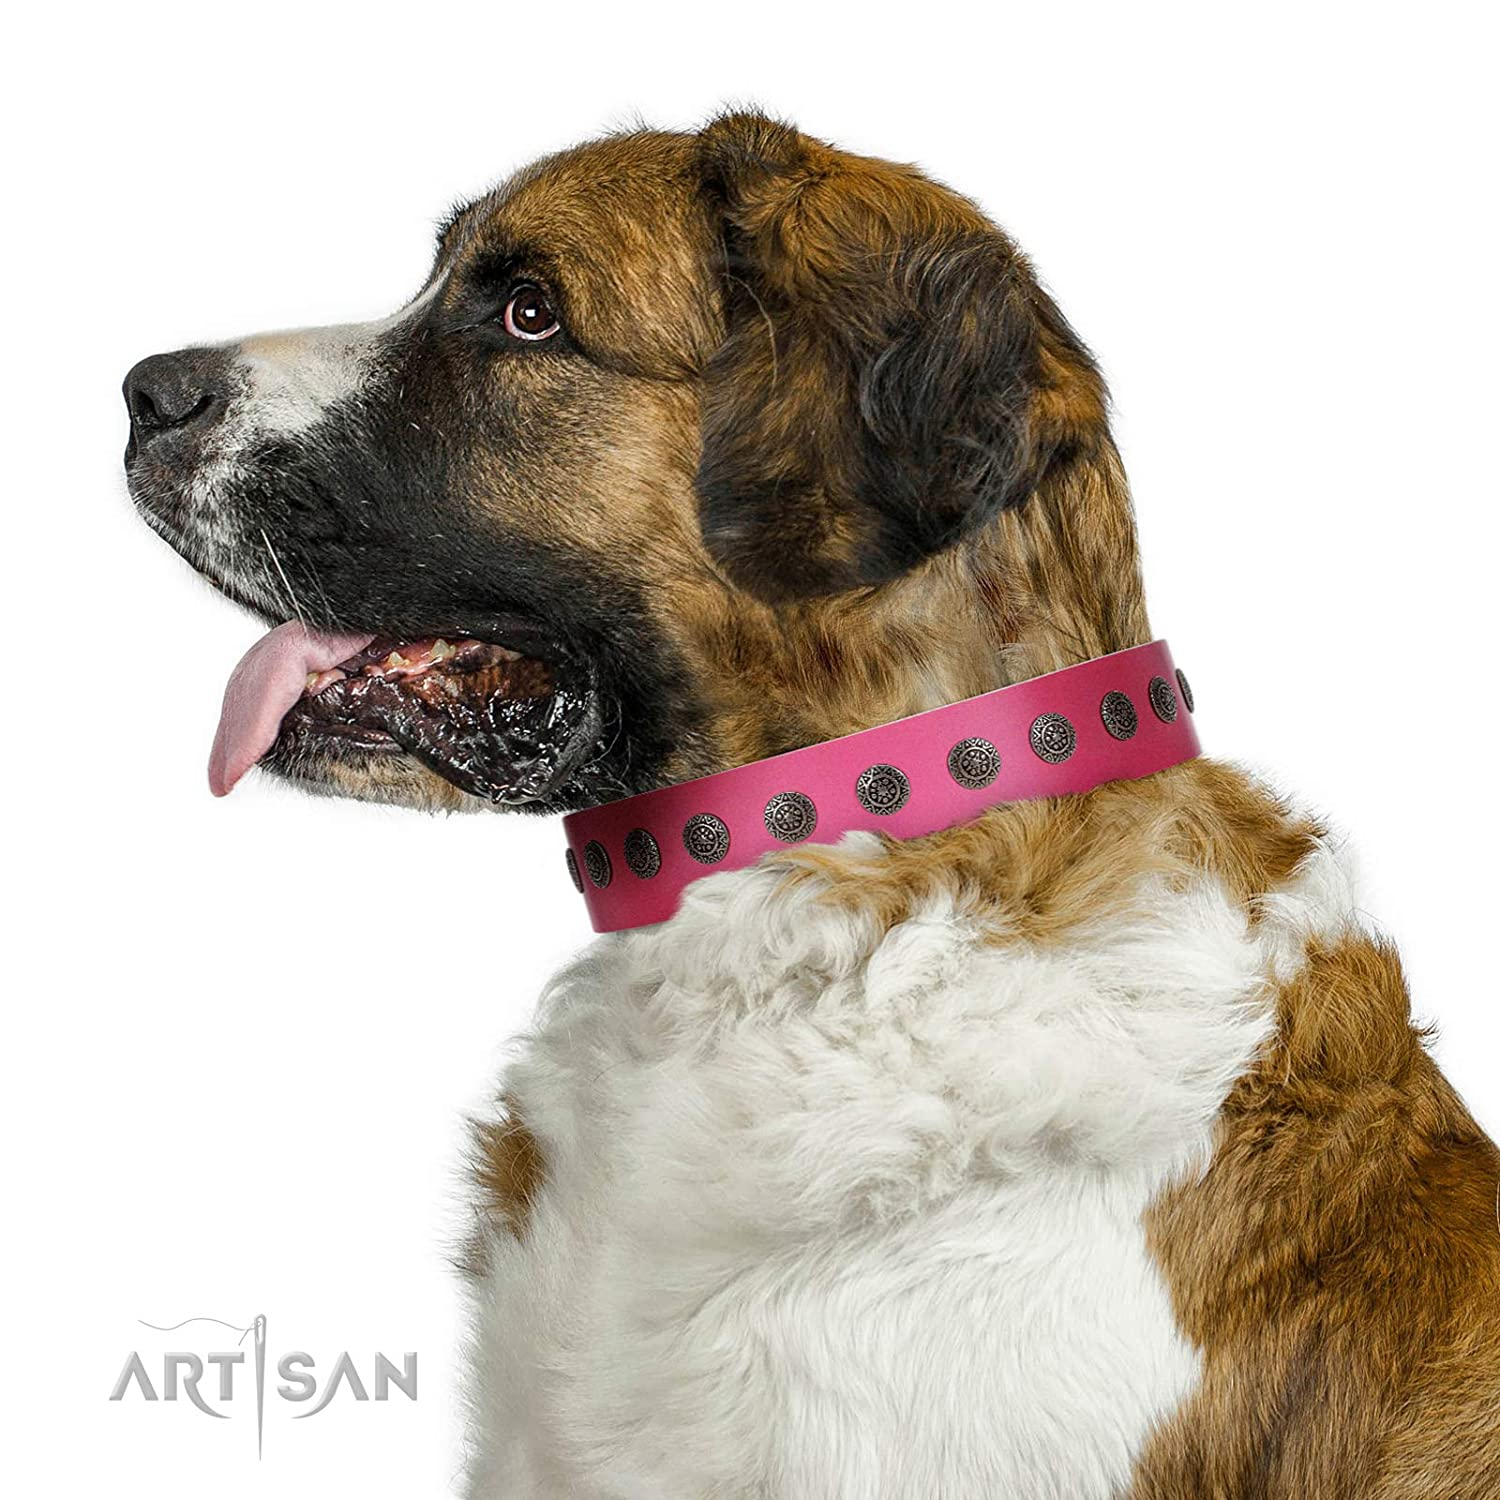 Fits for 17 inch (43cm) dog's neck size FDT Artisan 17 inch Pop Star Handcrafted Pink Leather Dog Collar with Round Plates 1 1 2 inch (40 cm) Wide Gift Box Included